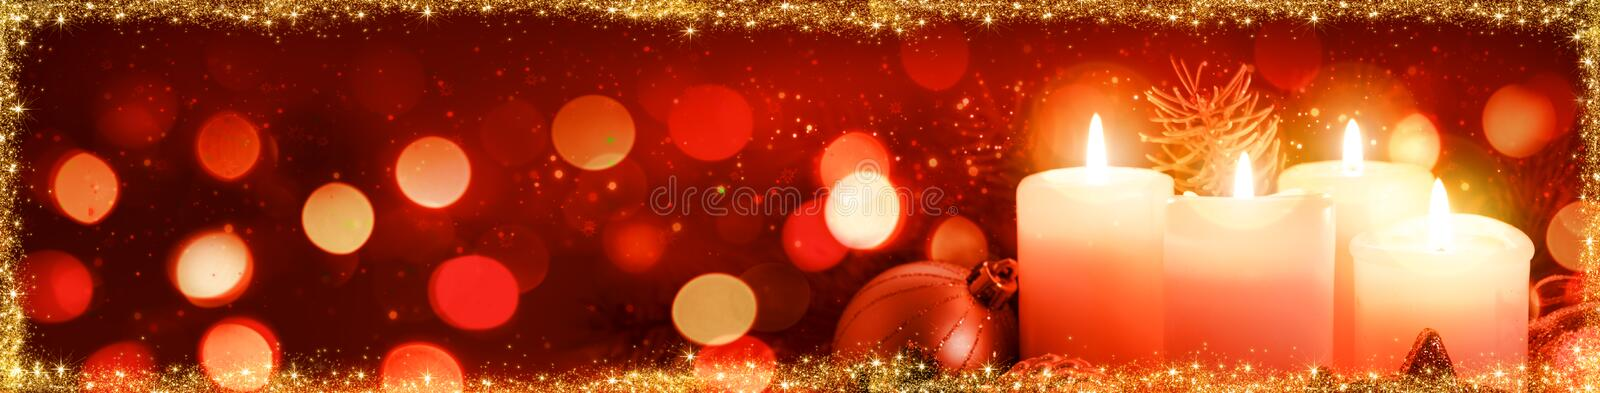 Four burning Advent candles and decoration. . Christmas background. royalty free stock photography